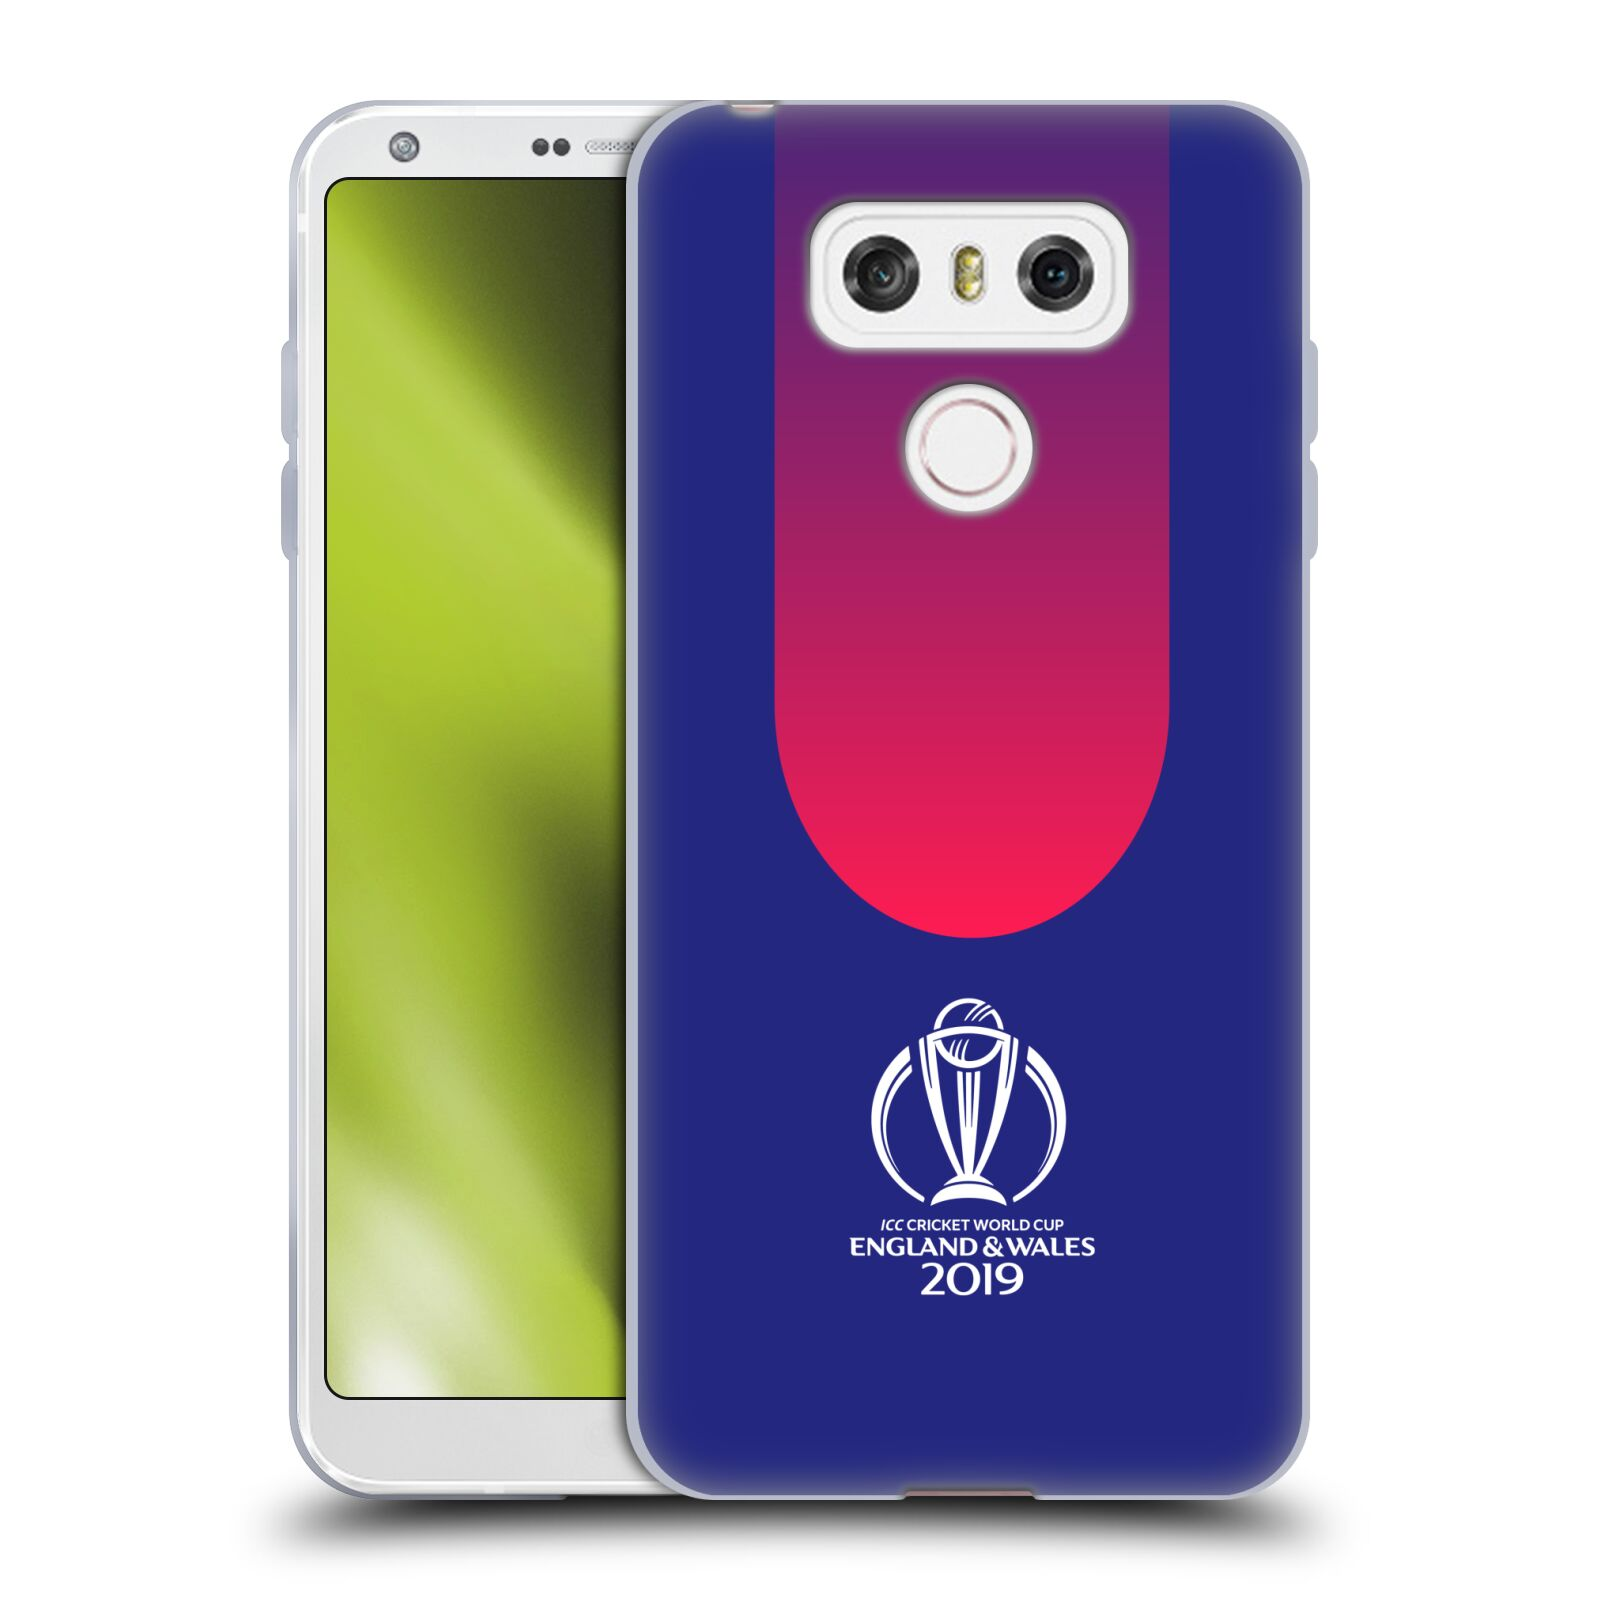 OFFIZIELLE-ICC-CWC-2019-CRICKET-WORLD-CUP-SOFT-GEL-HULLE-FUR-LG-HANDYS-1